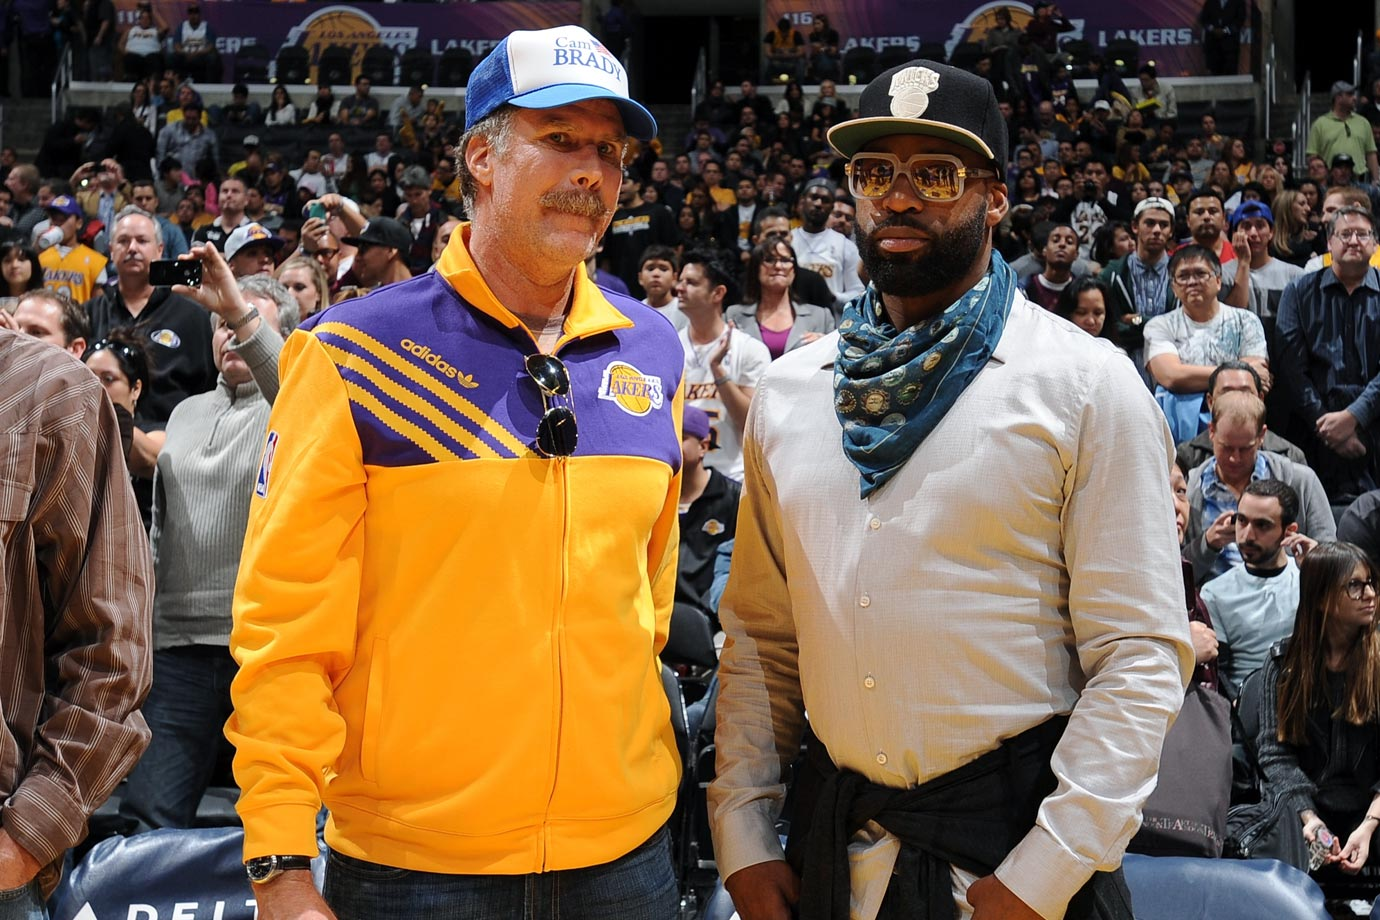 Will Ferrell poses with Baron Davis prior to the Los Angeles Lakers game against the Sacramento Kings on Nov. 11, 2012 at Staples Center in Los Angeles.